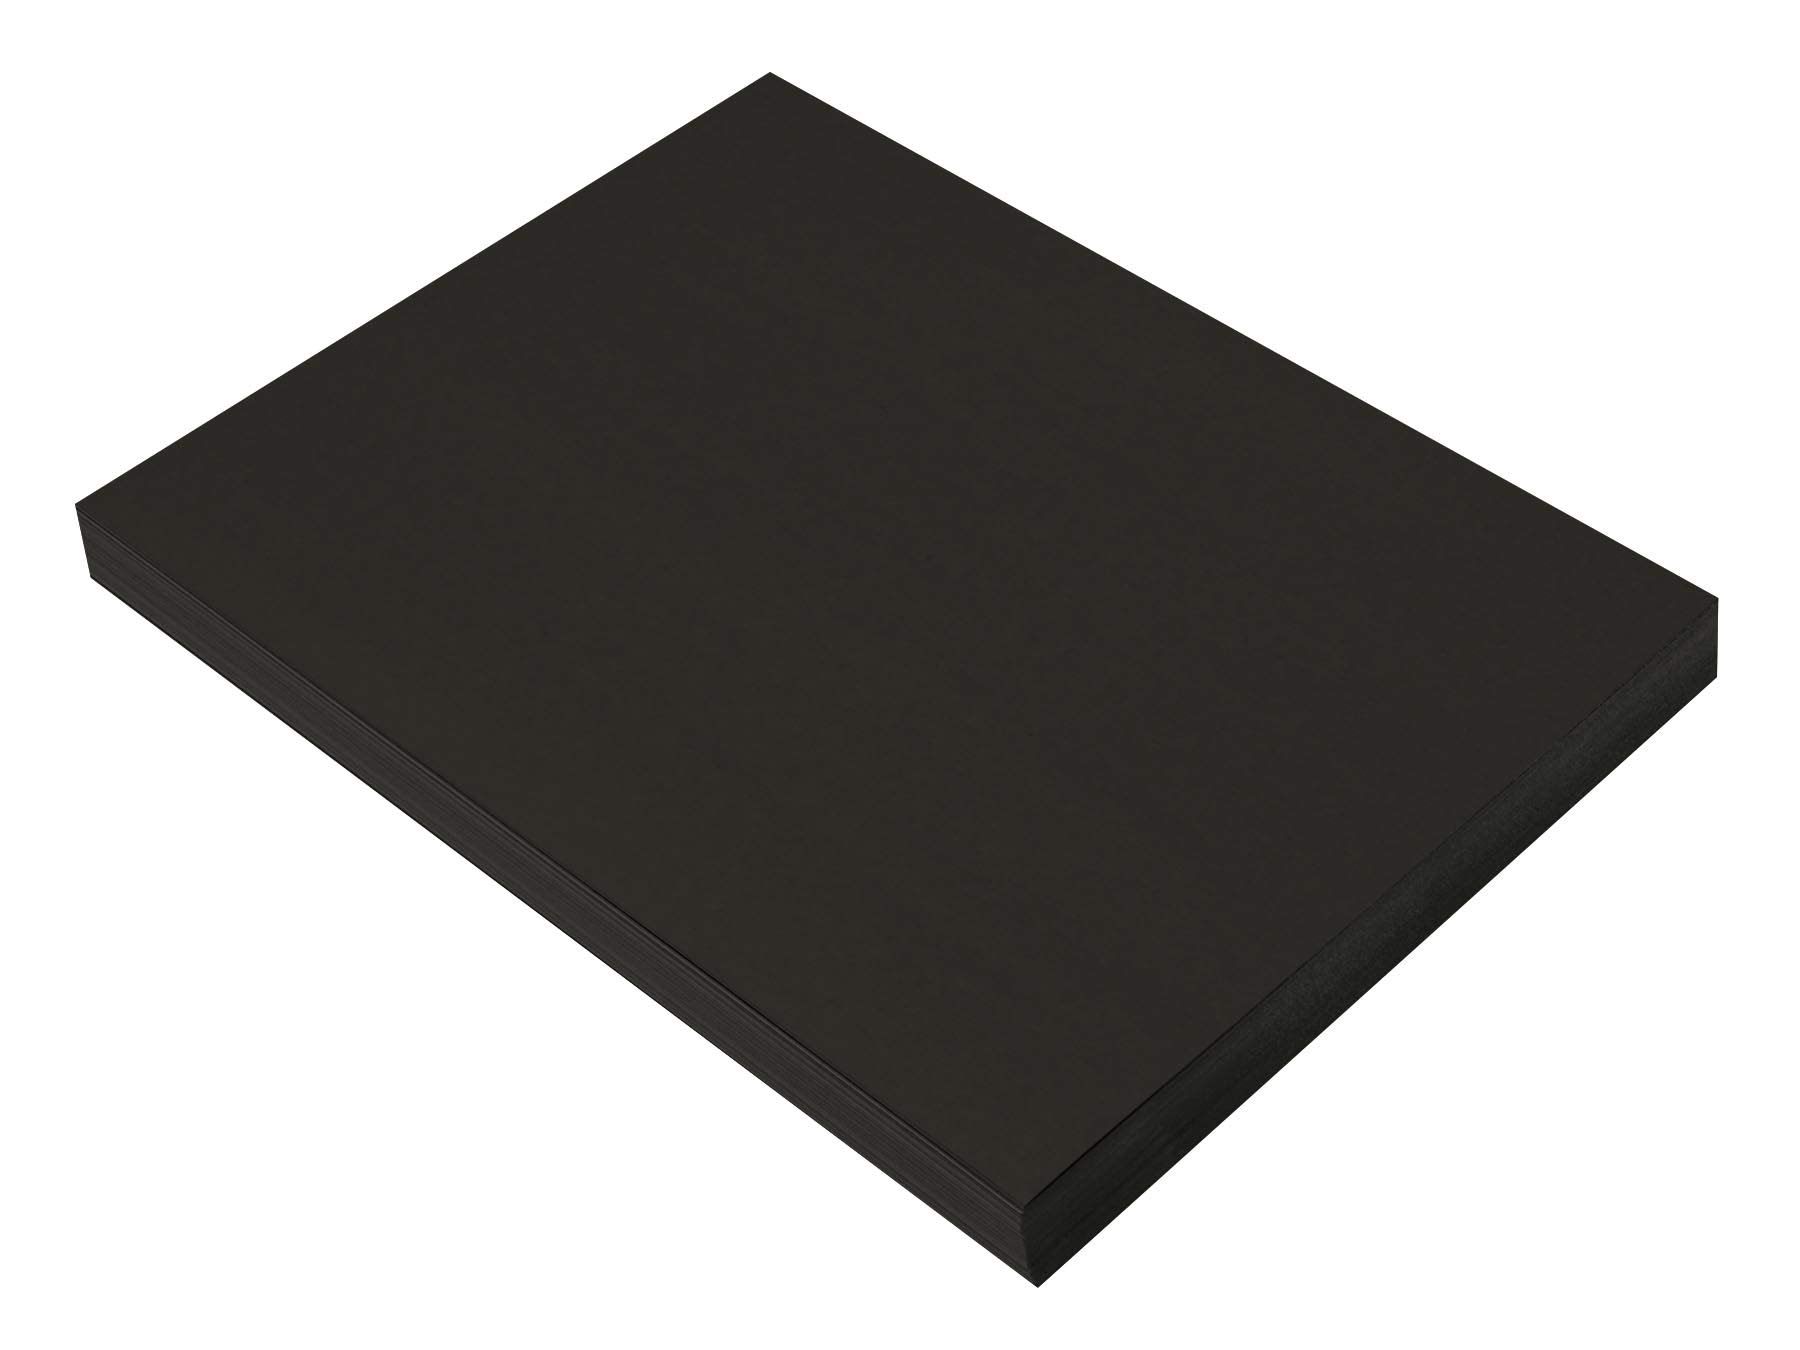 SunWorks Heavyweight Construction Paper 9 x 12 Inches Black 100 Sheets